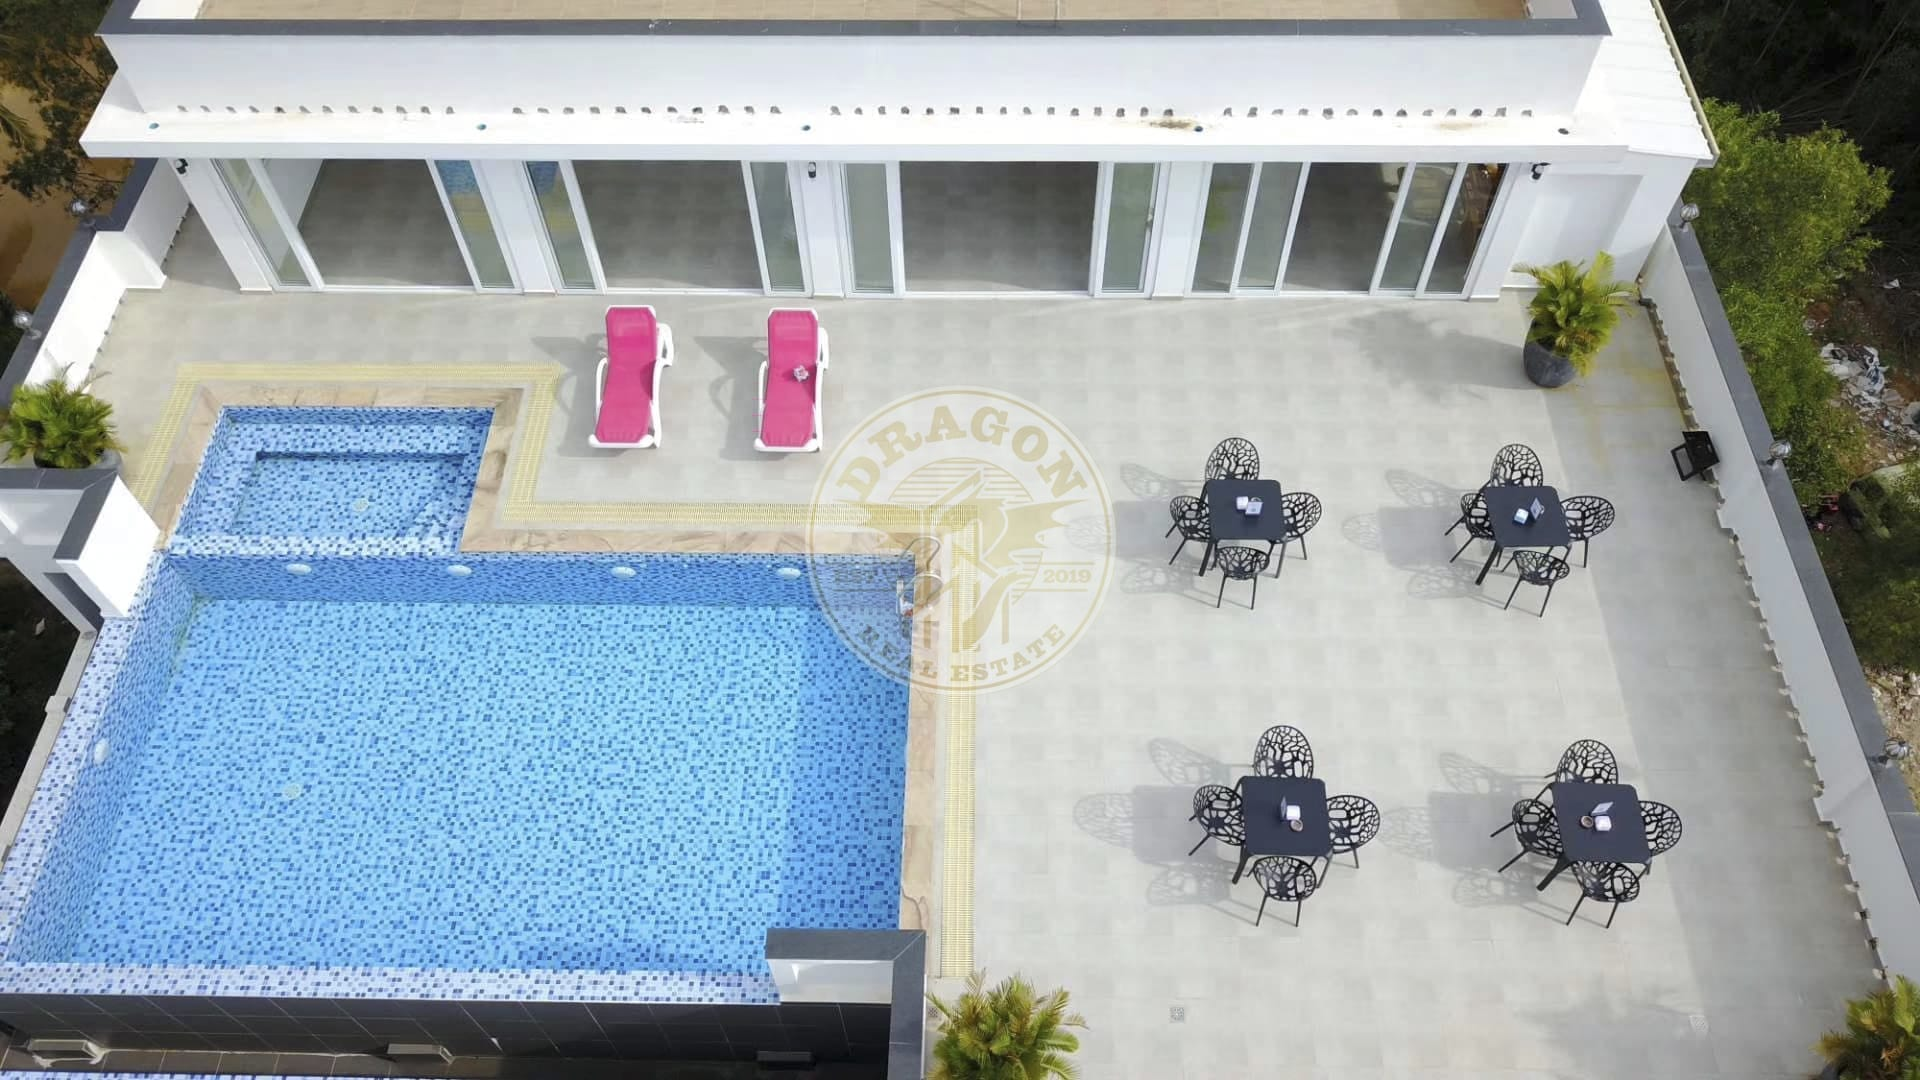 Europe Style Apartment for Rent. Rooms for Rent in Sihanoukville Cambodia